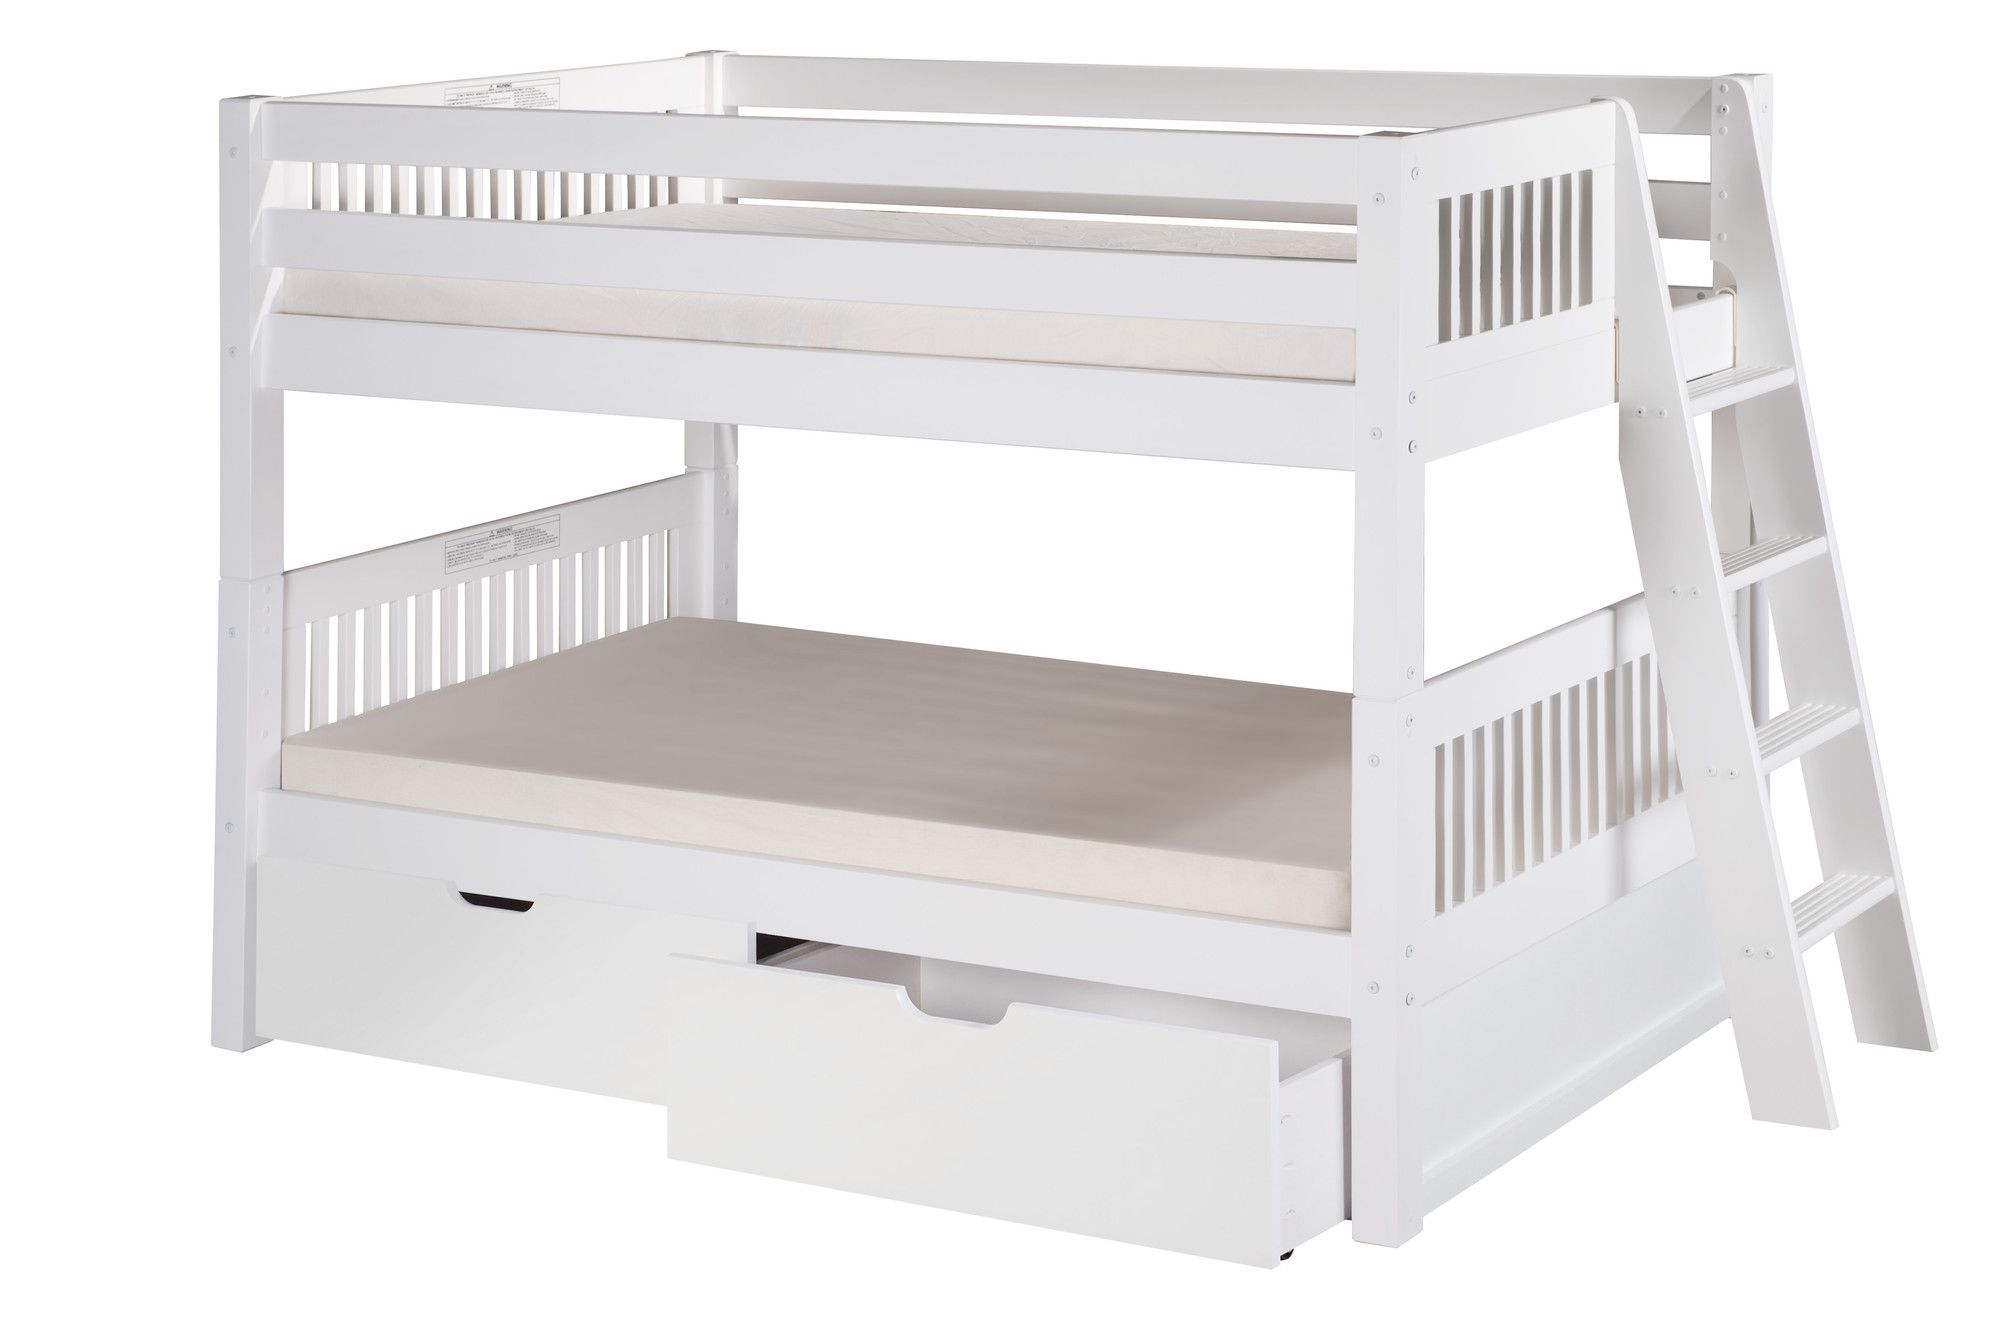 Loft bed ladder ideas  Camaflexi Low Bunk Bed with Lateral Angle Ladder and Drawers